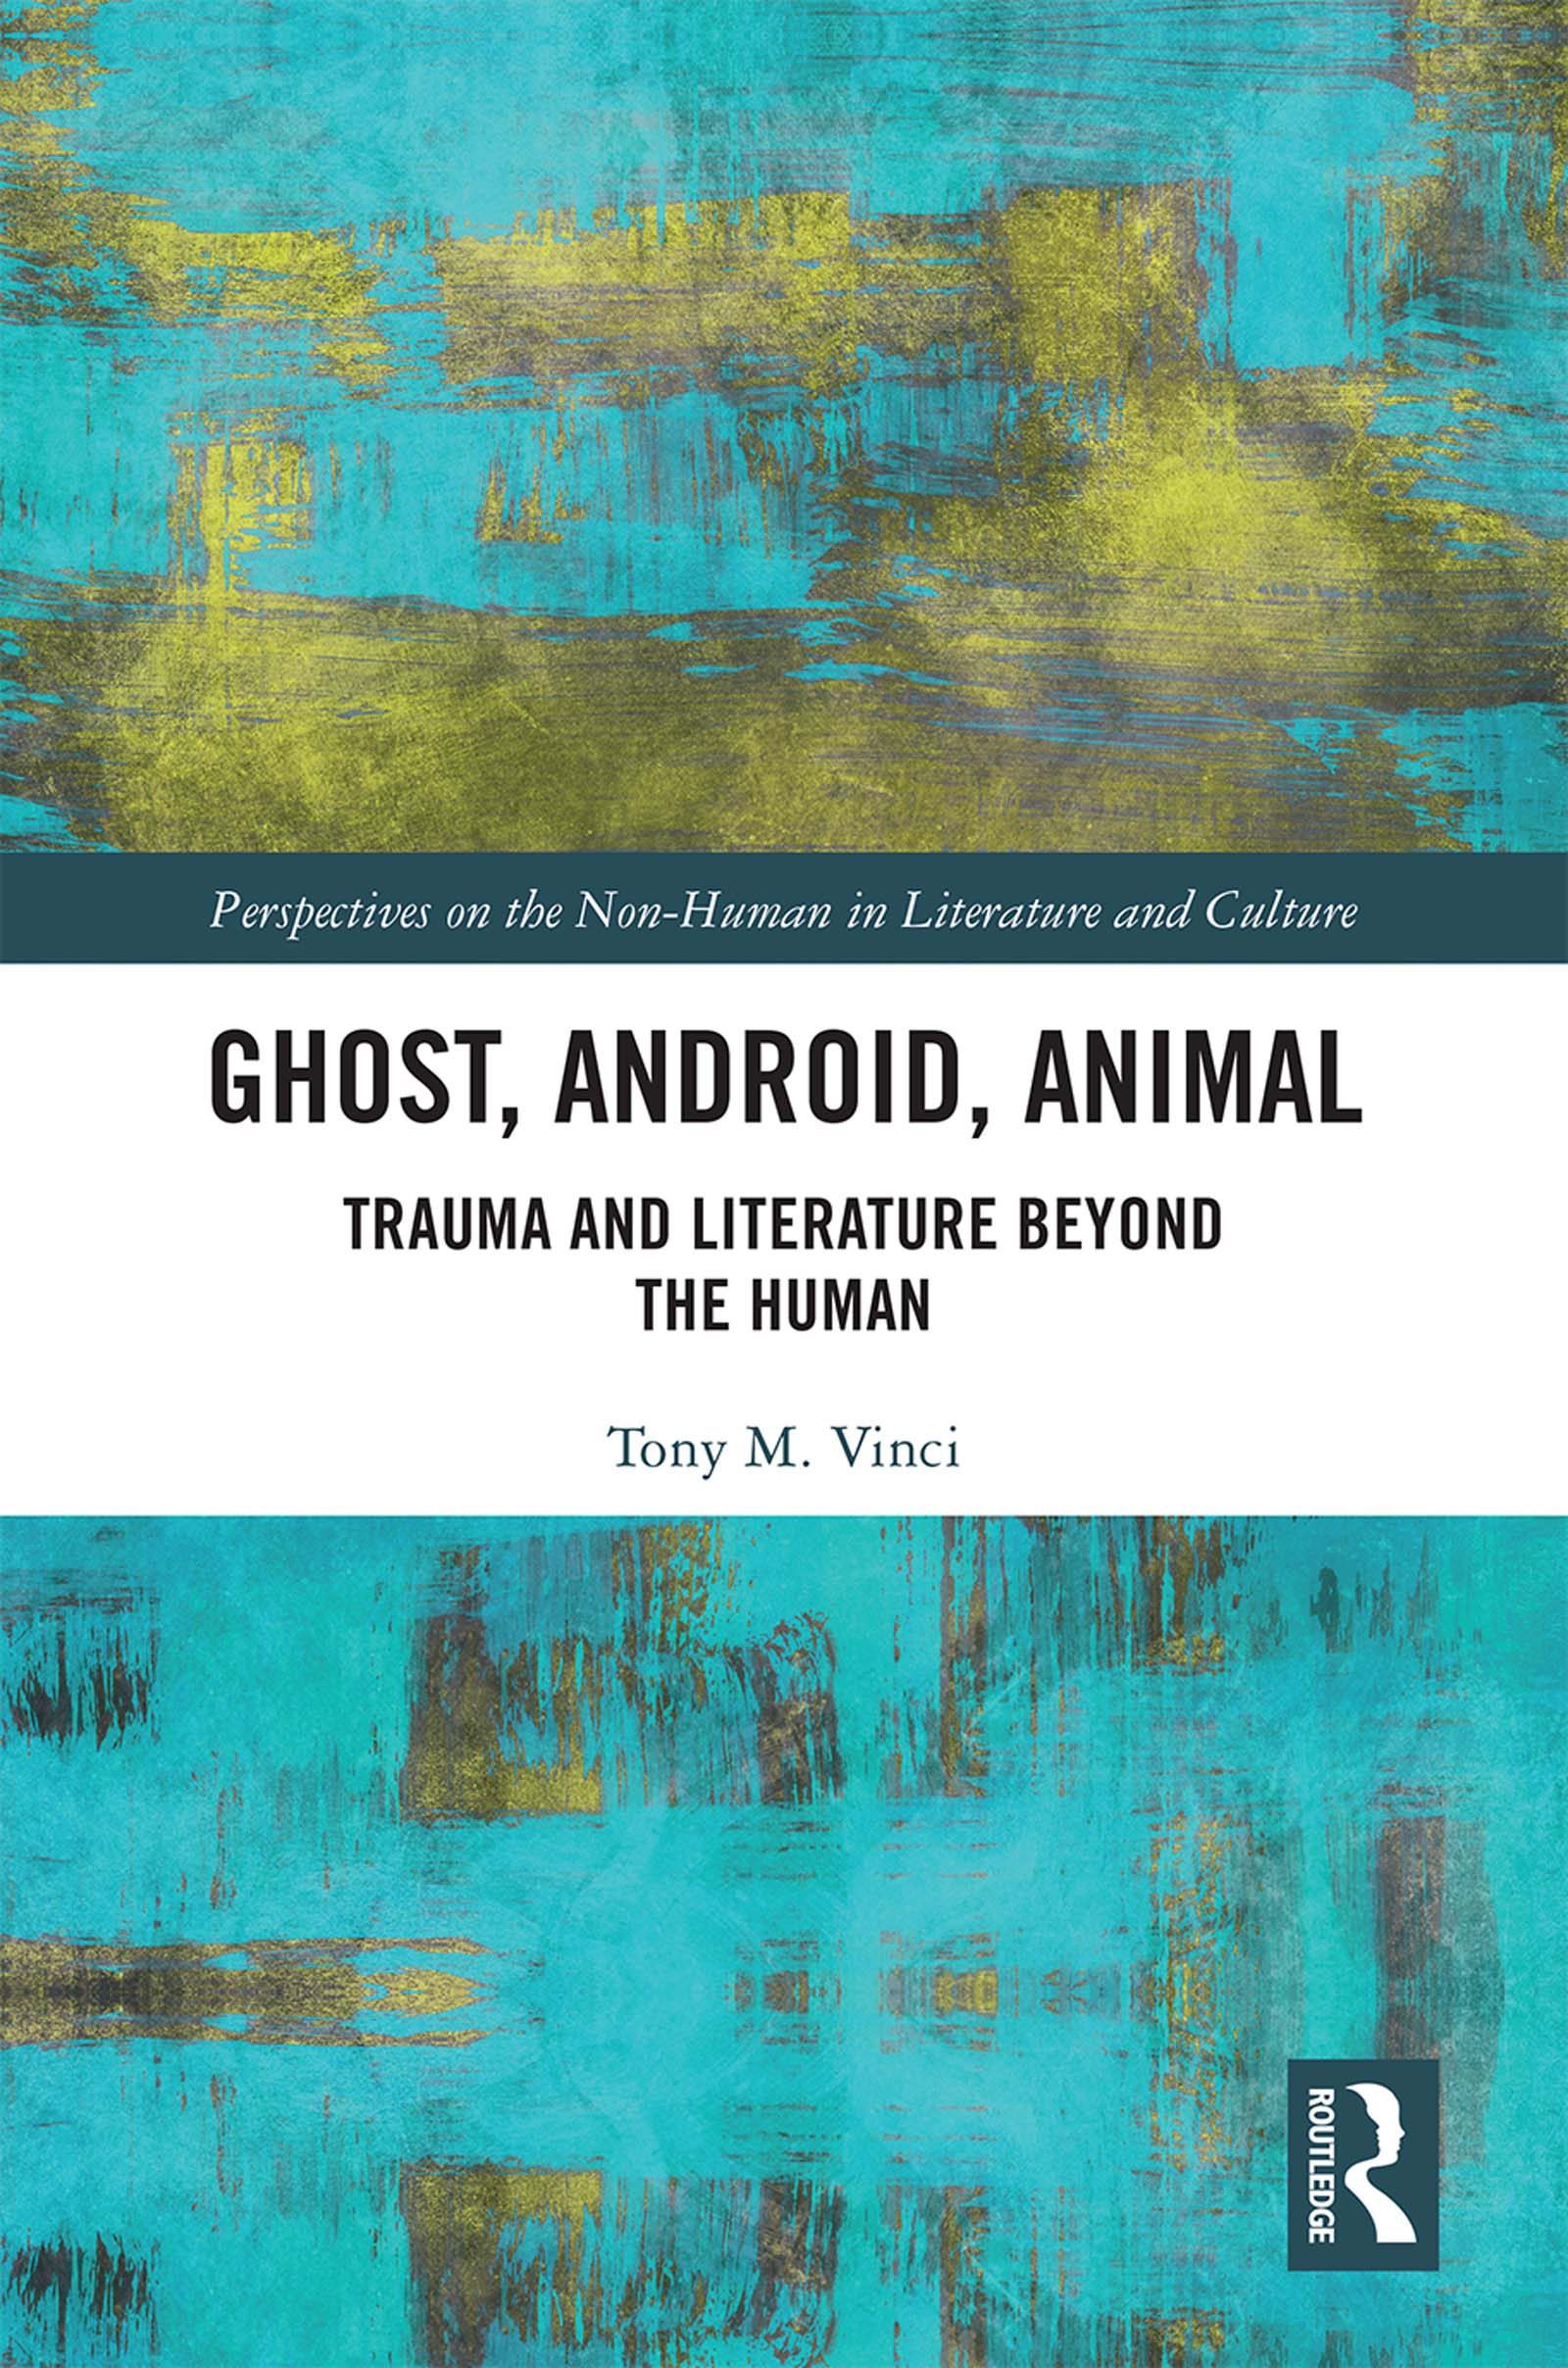 Ghost, Android, Animal: Trauma and Literature Beyond the Human book cover